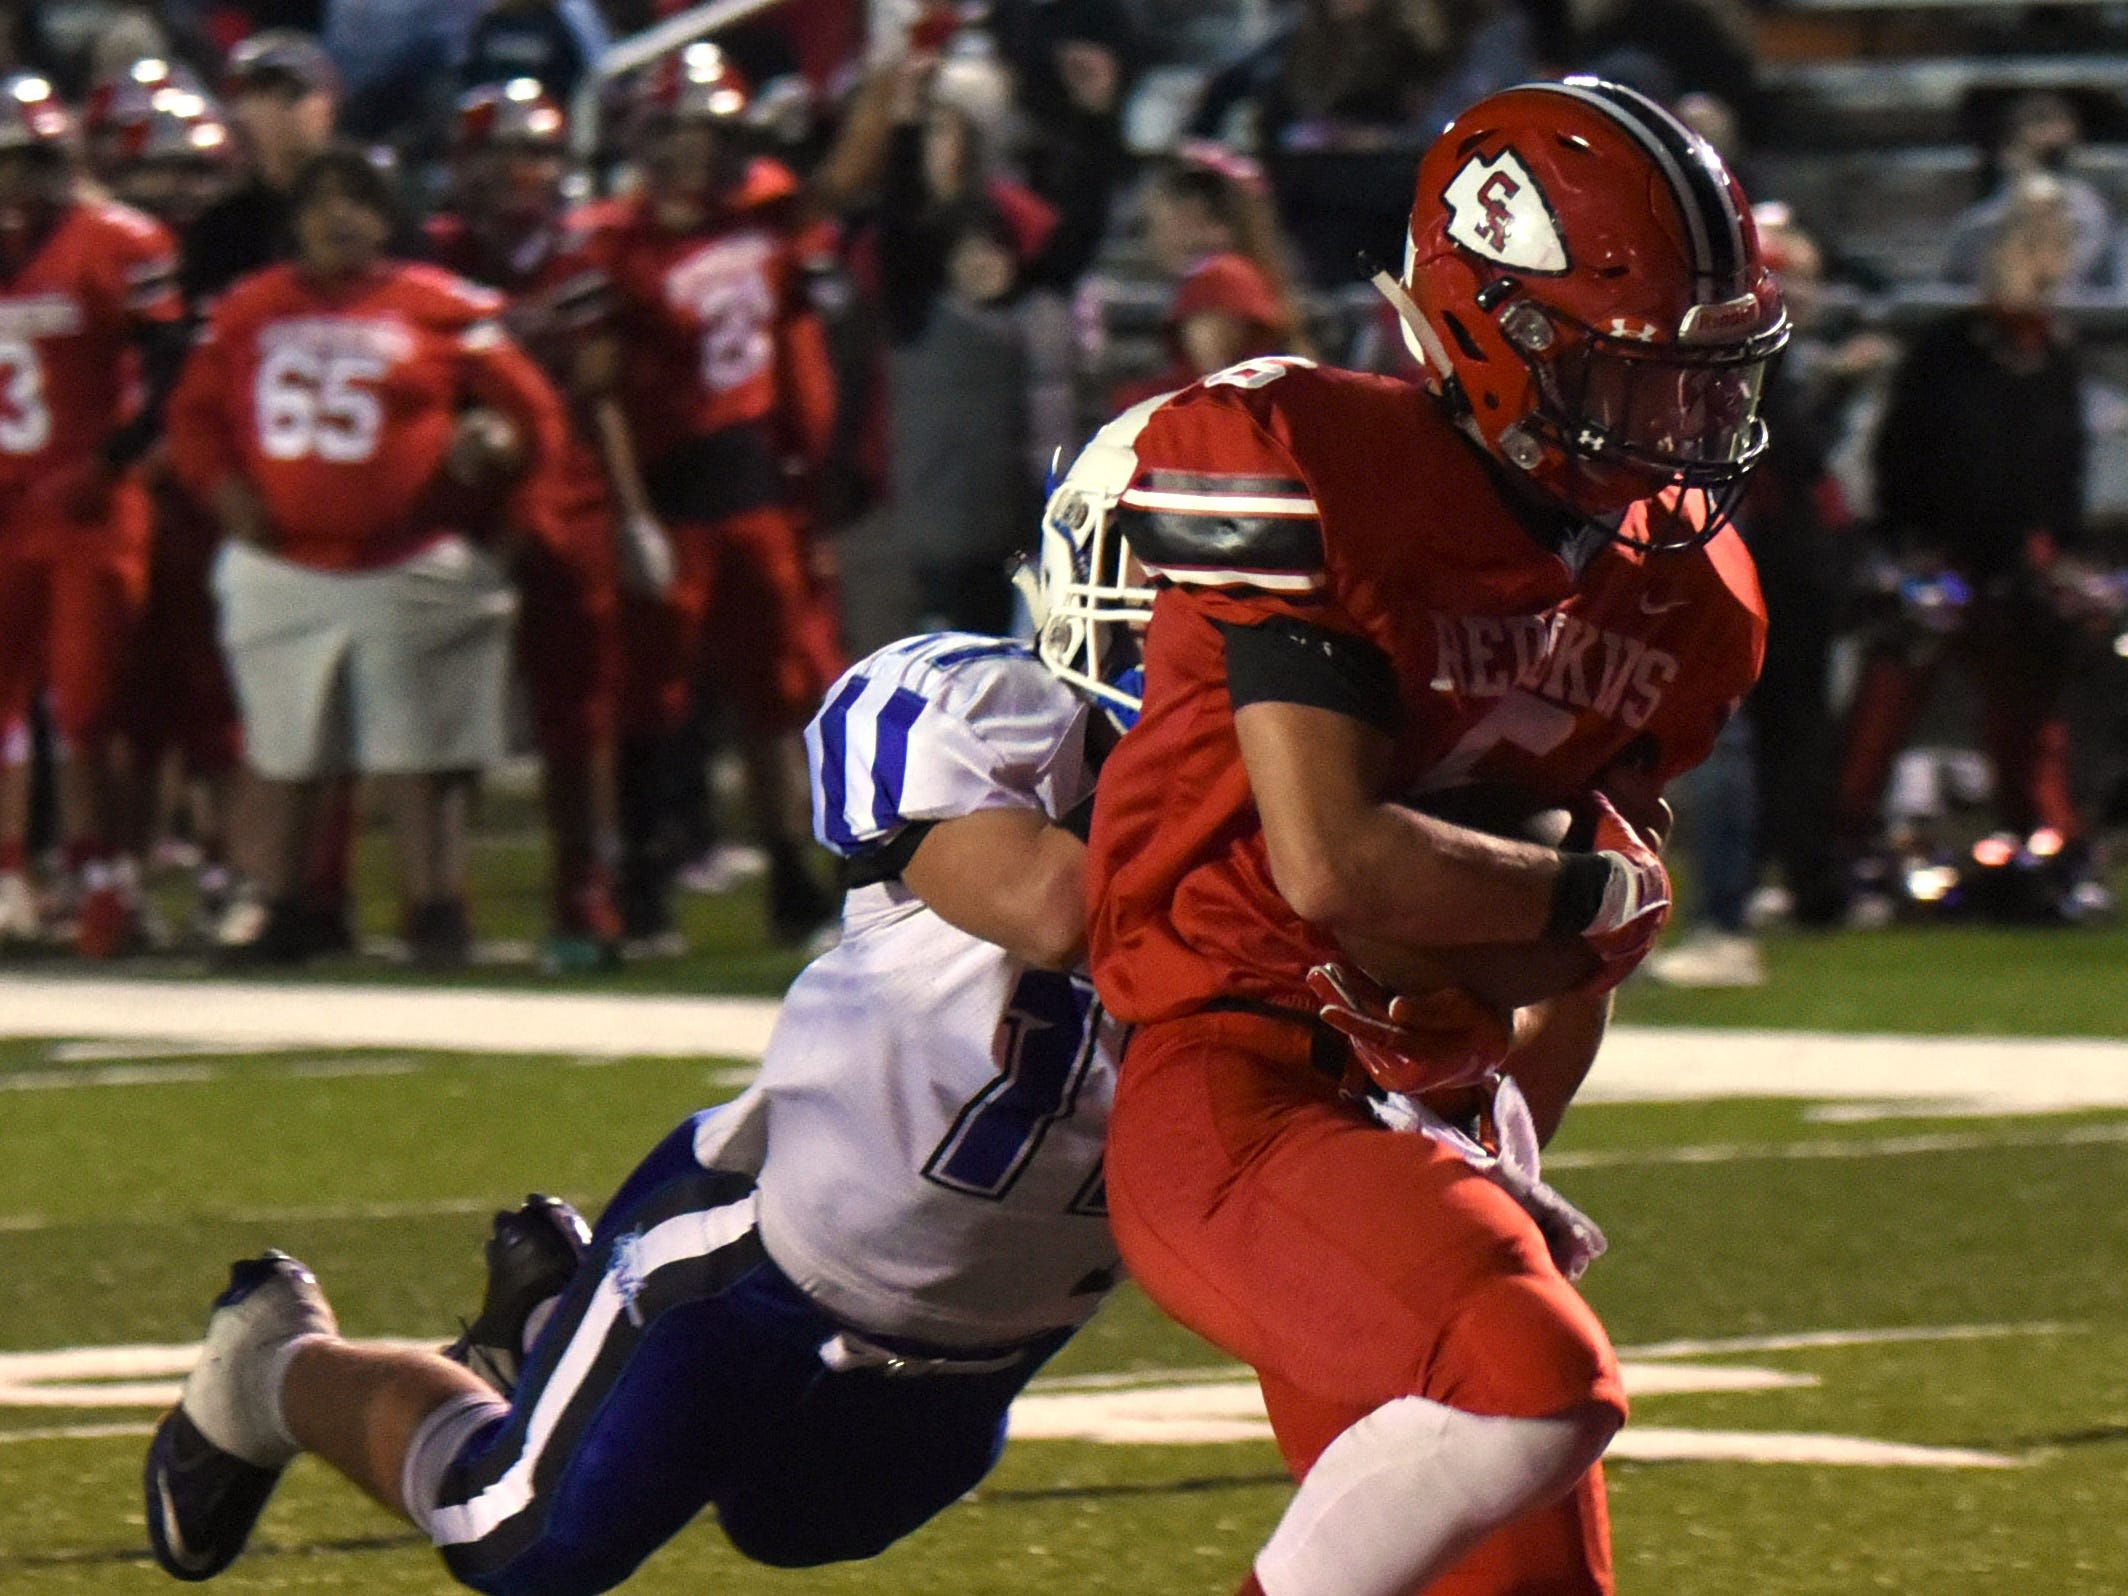 Coshocton senior Andrew Kittell makes it in to the end zone before a Cambridge defender can tackle him for a touchdown in the second quarter during their homecoming game on Friday, Oct. 12, 2018. Coshocton lost 33-22.